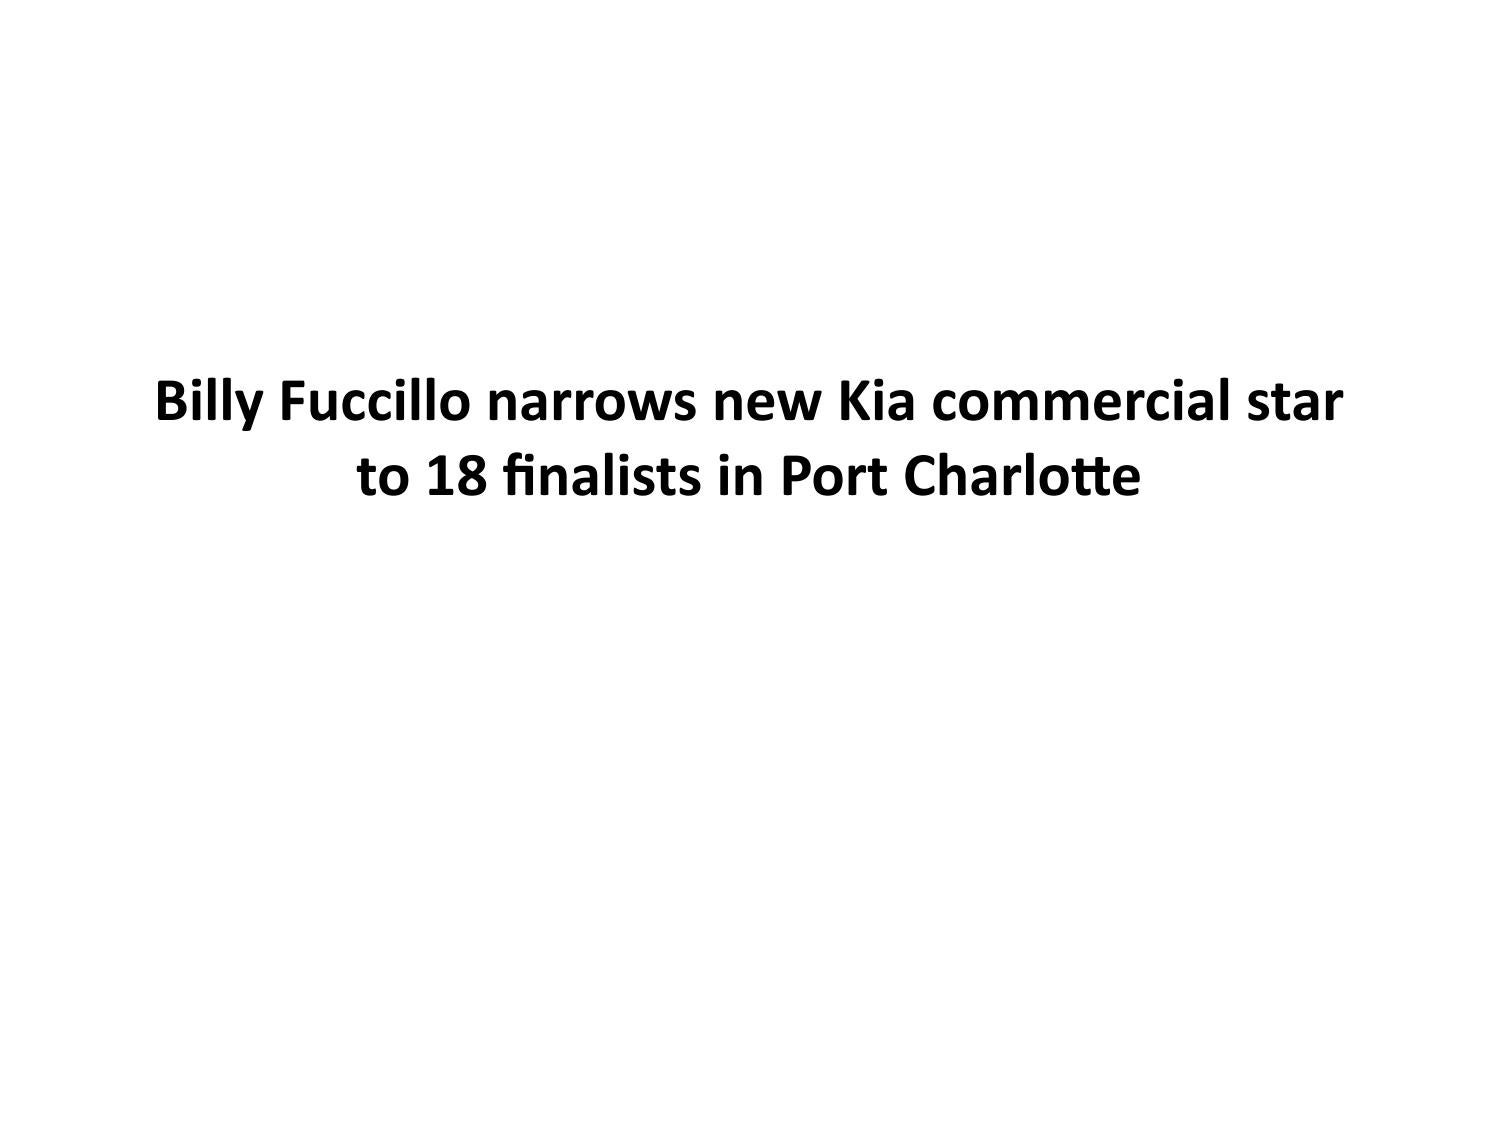 billy fuccillo narrows new kia commercial star to 18 finalists in port charlotte by billy. Black Bedroom Furniture Sets. Home Design Ideas